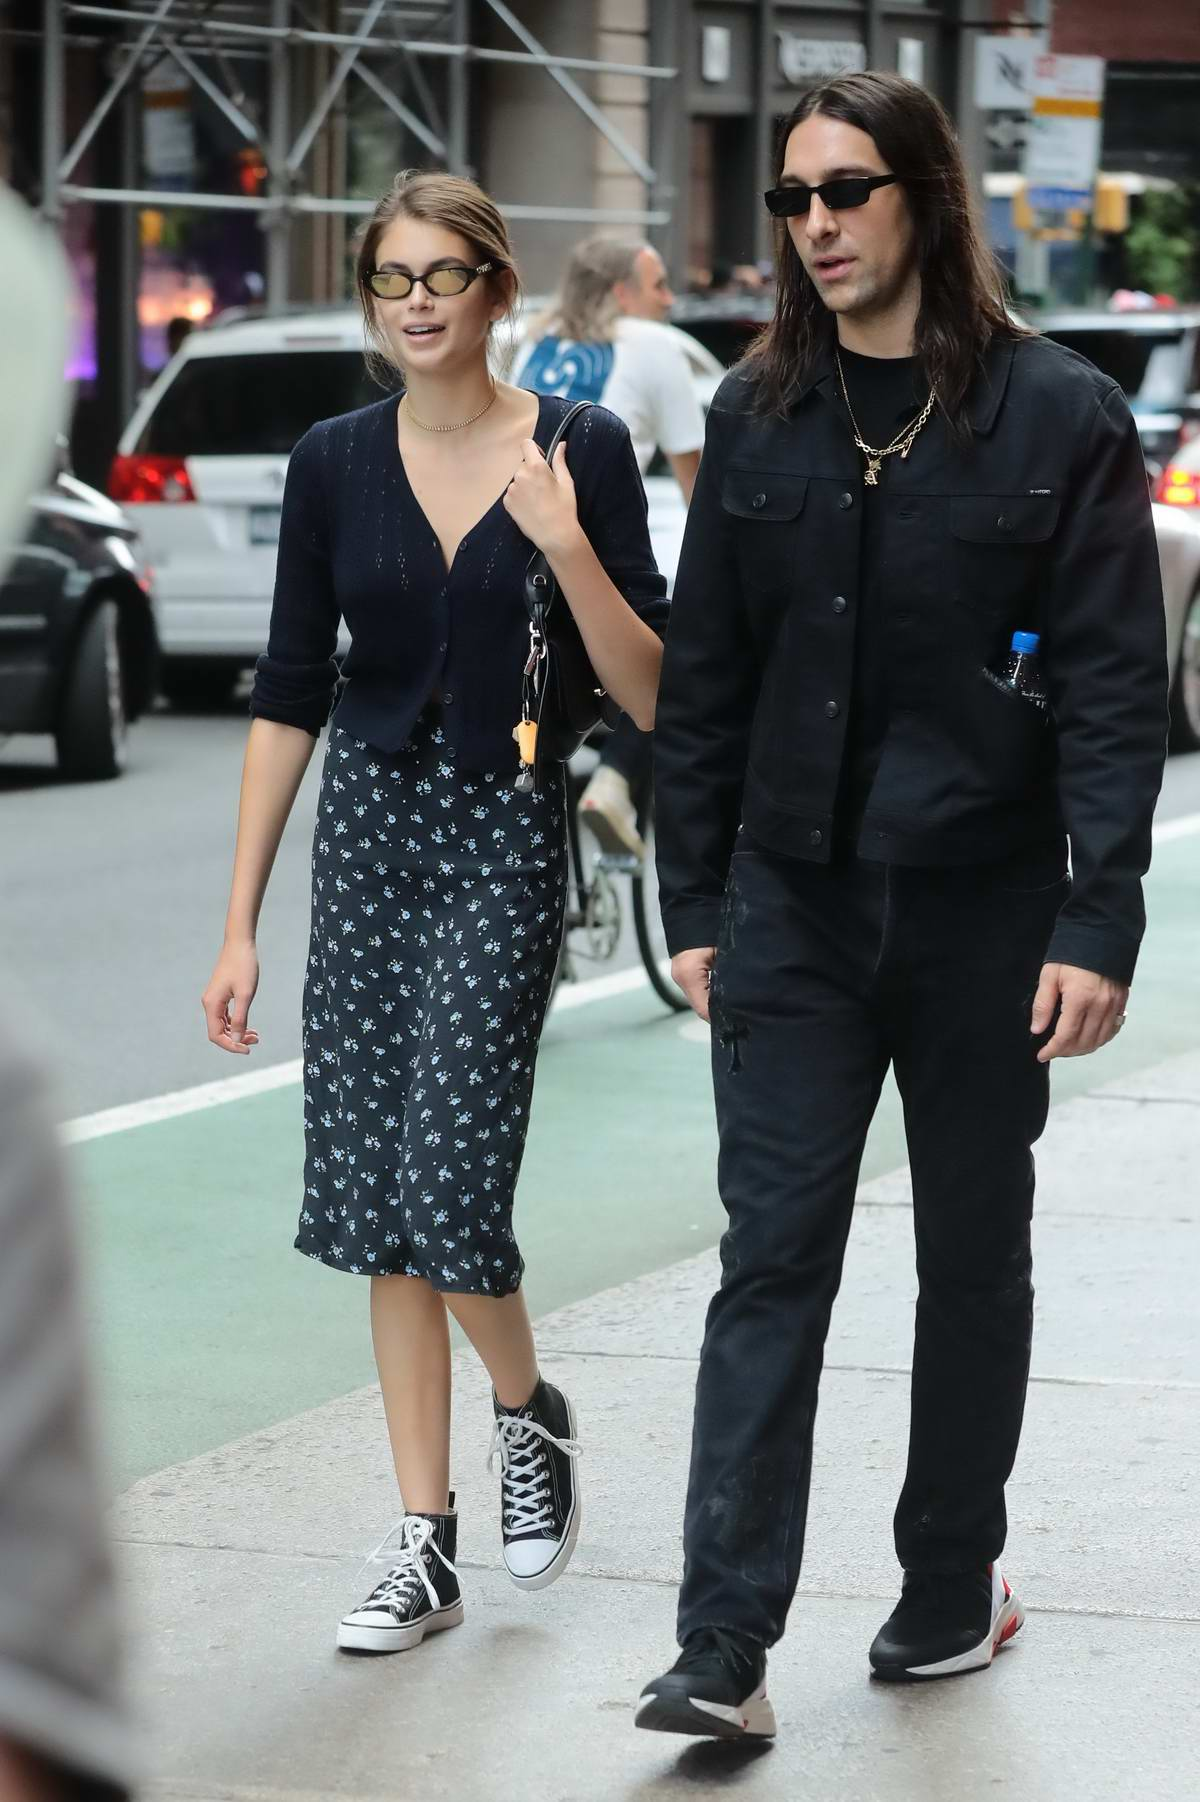 Kaia Gerber wears Chanel sunglasses with a black cardigan and patterned skirt while out for a stroll in New York City